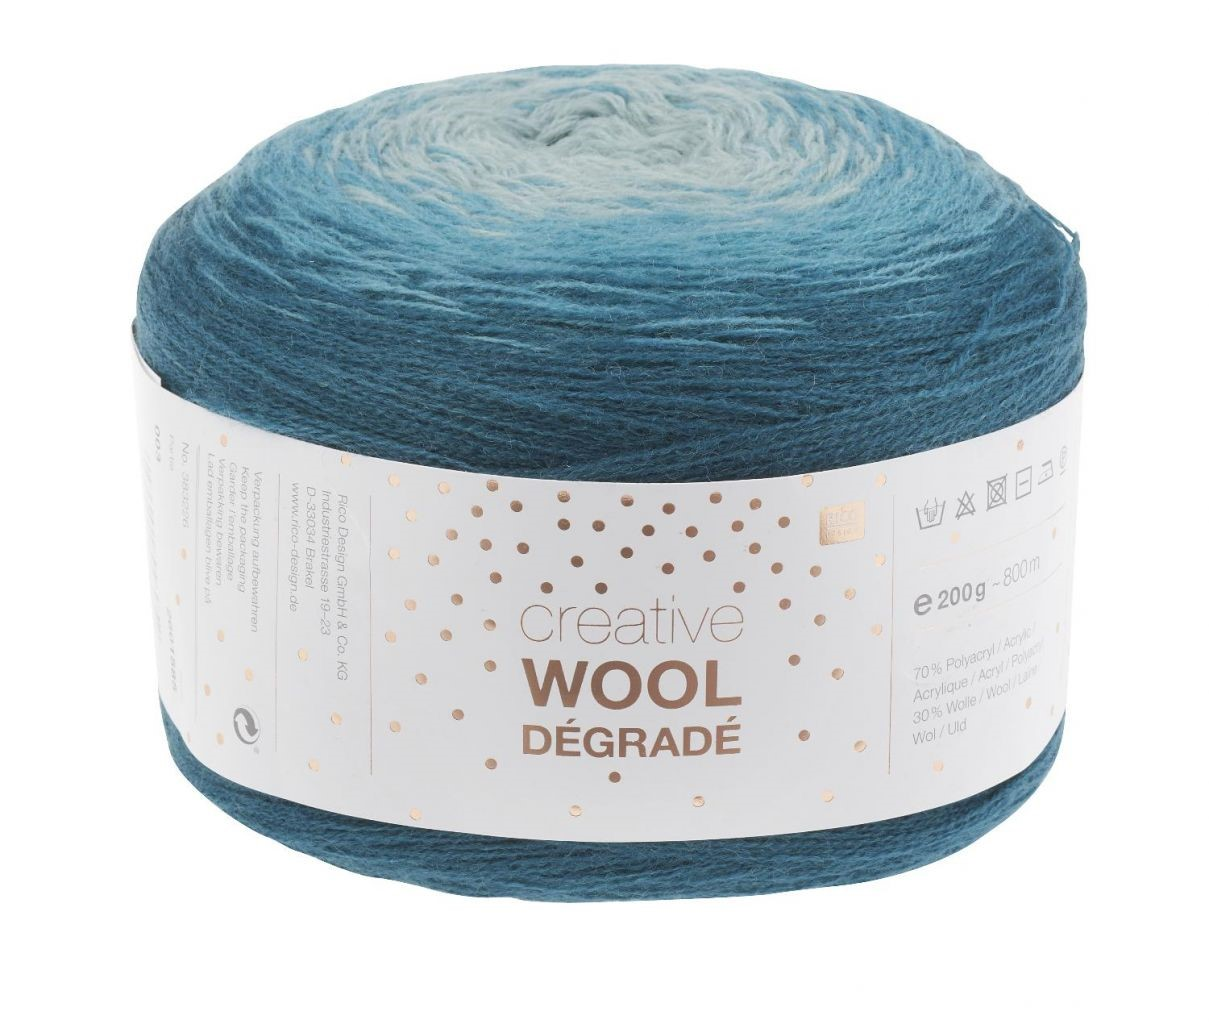 3 Creative wool degrade rico.jpg